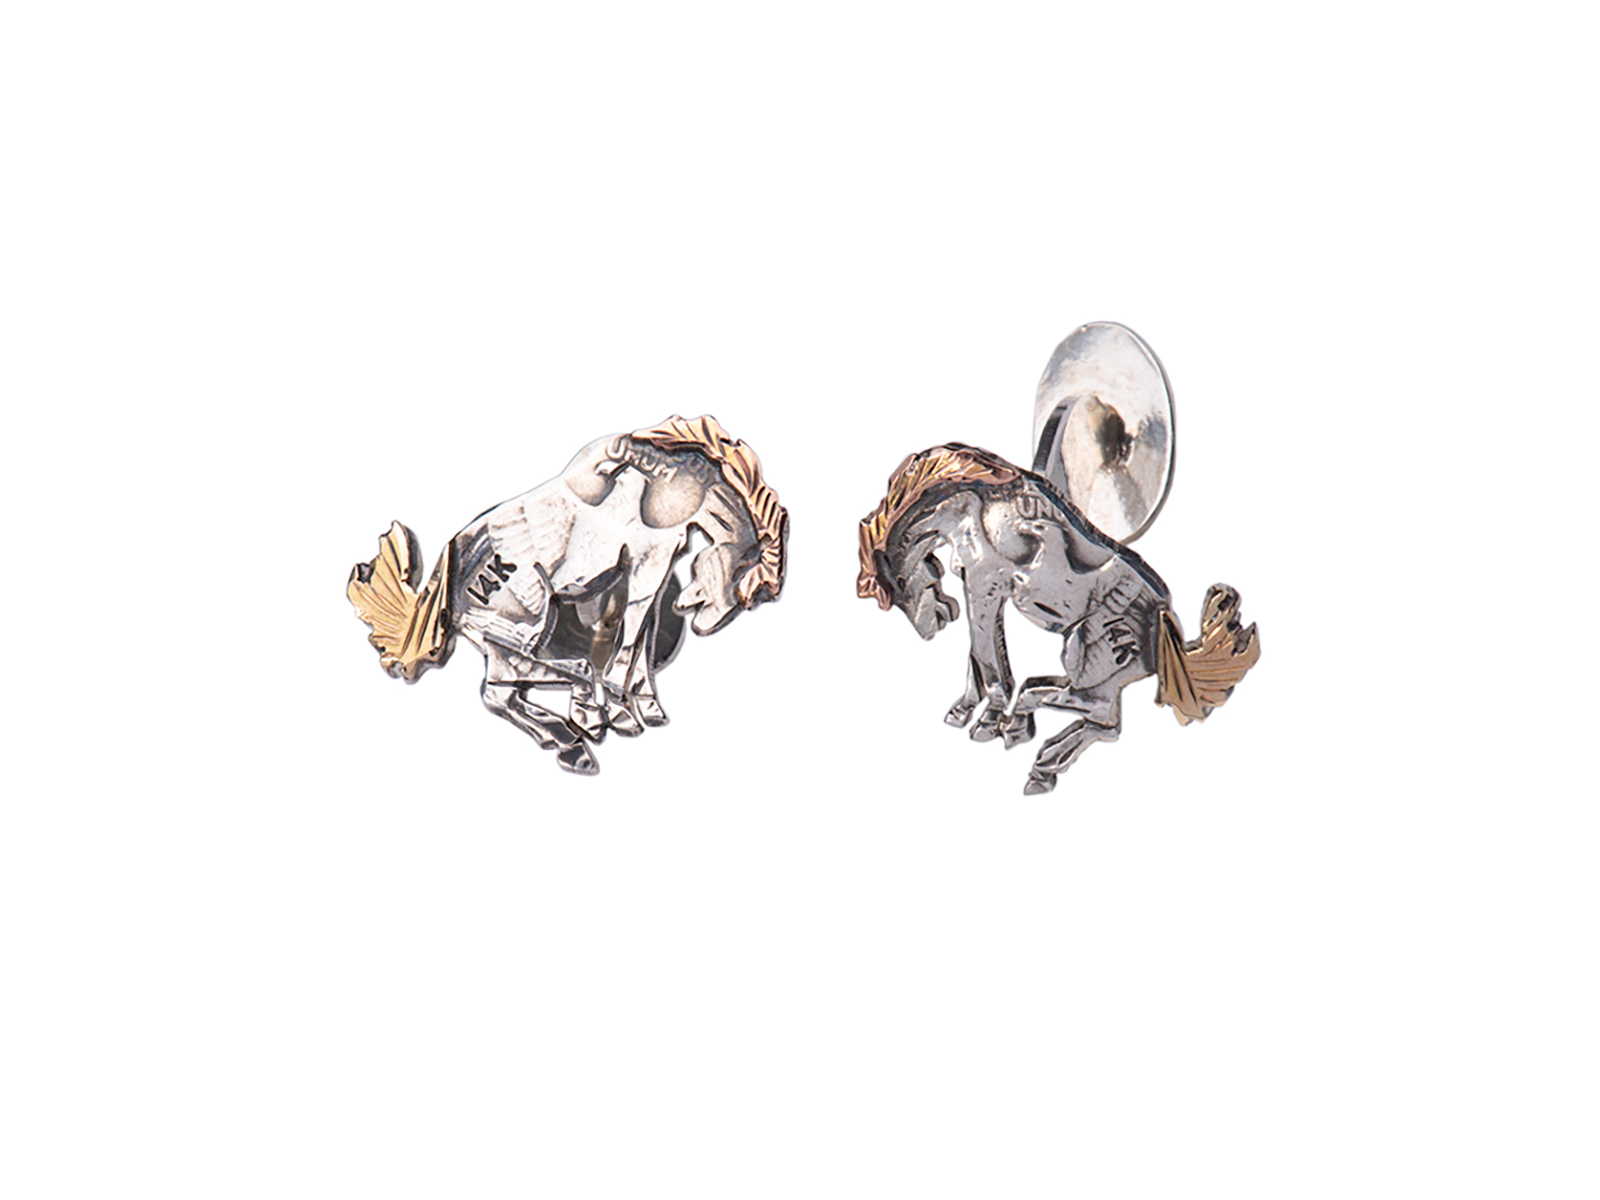 Buckin Bronco Cuff Links